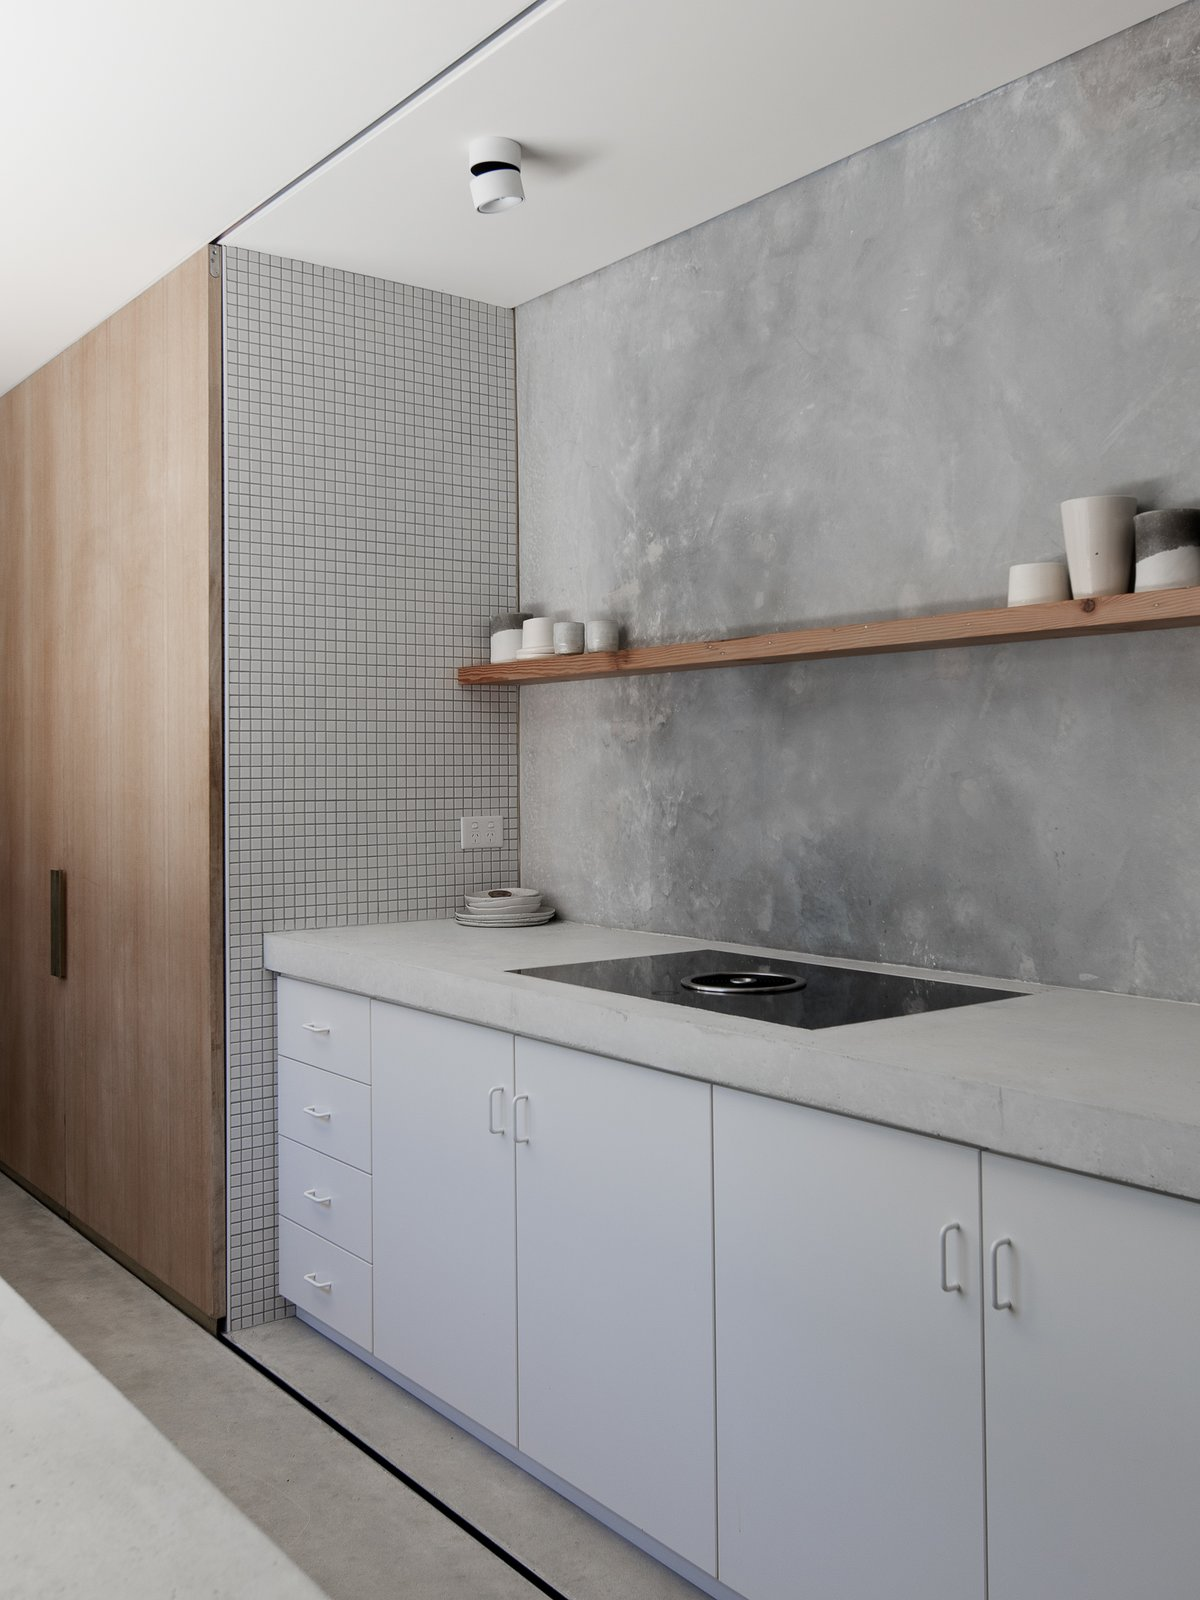 """Kitchen, Concrete, Concrete, Ceiling, White, Cooktops, and Concrete In the kitchen, white concrete counters top white cabinetry and abut a tile accent wall. The streamlined palette of the house """"originated from a desire to have a space to unwind in that wasn't over-saturated with trends or design features or glossy plastic finishes,"""" say the architects.  Best Kitchen Concrete Cooktops Ceiling Photos from A Carbon-Neutral Concrete House Is an Exemplary Infill in Western Australia"""